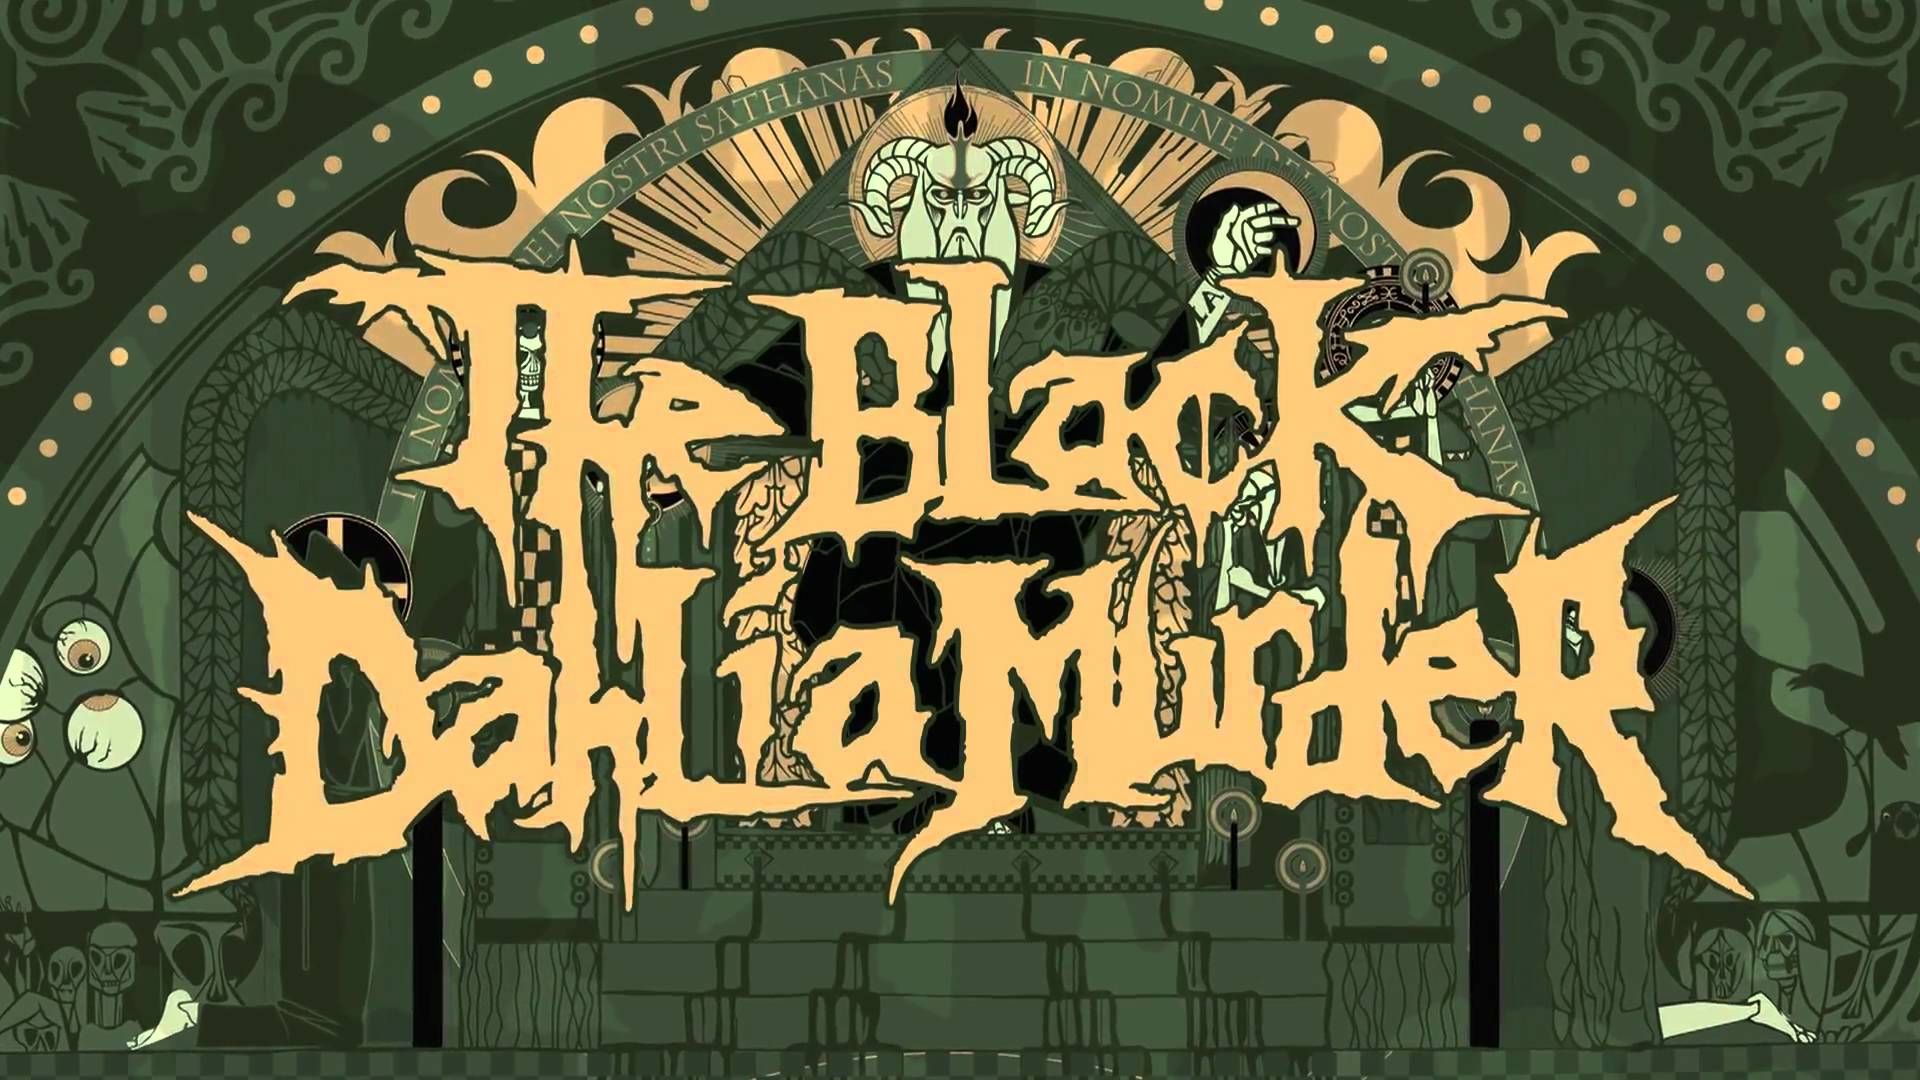 Free Download The Black Dahlia Murder Moonlight Equilibrium